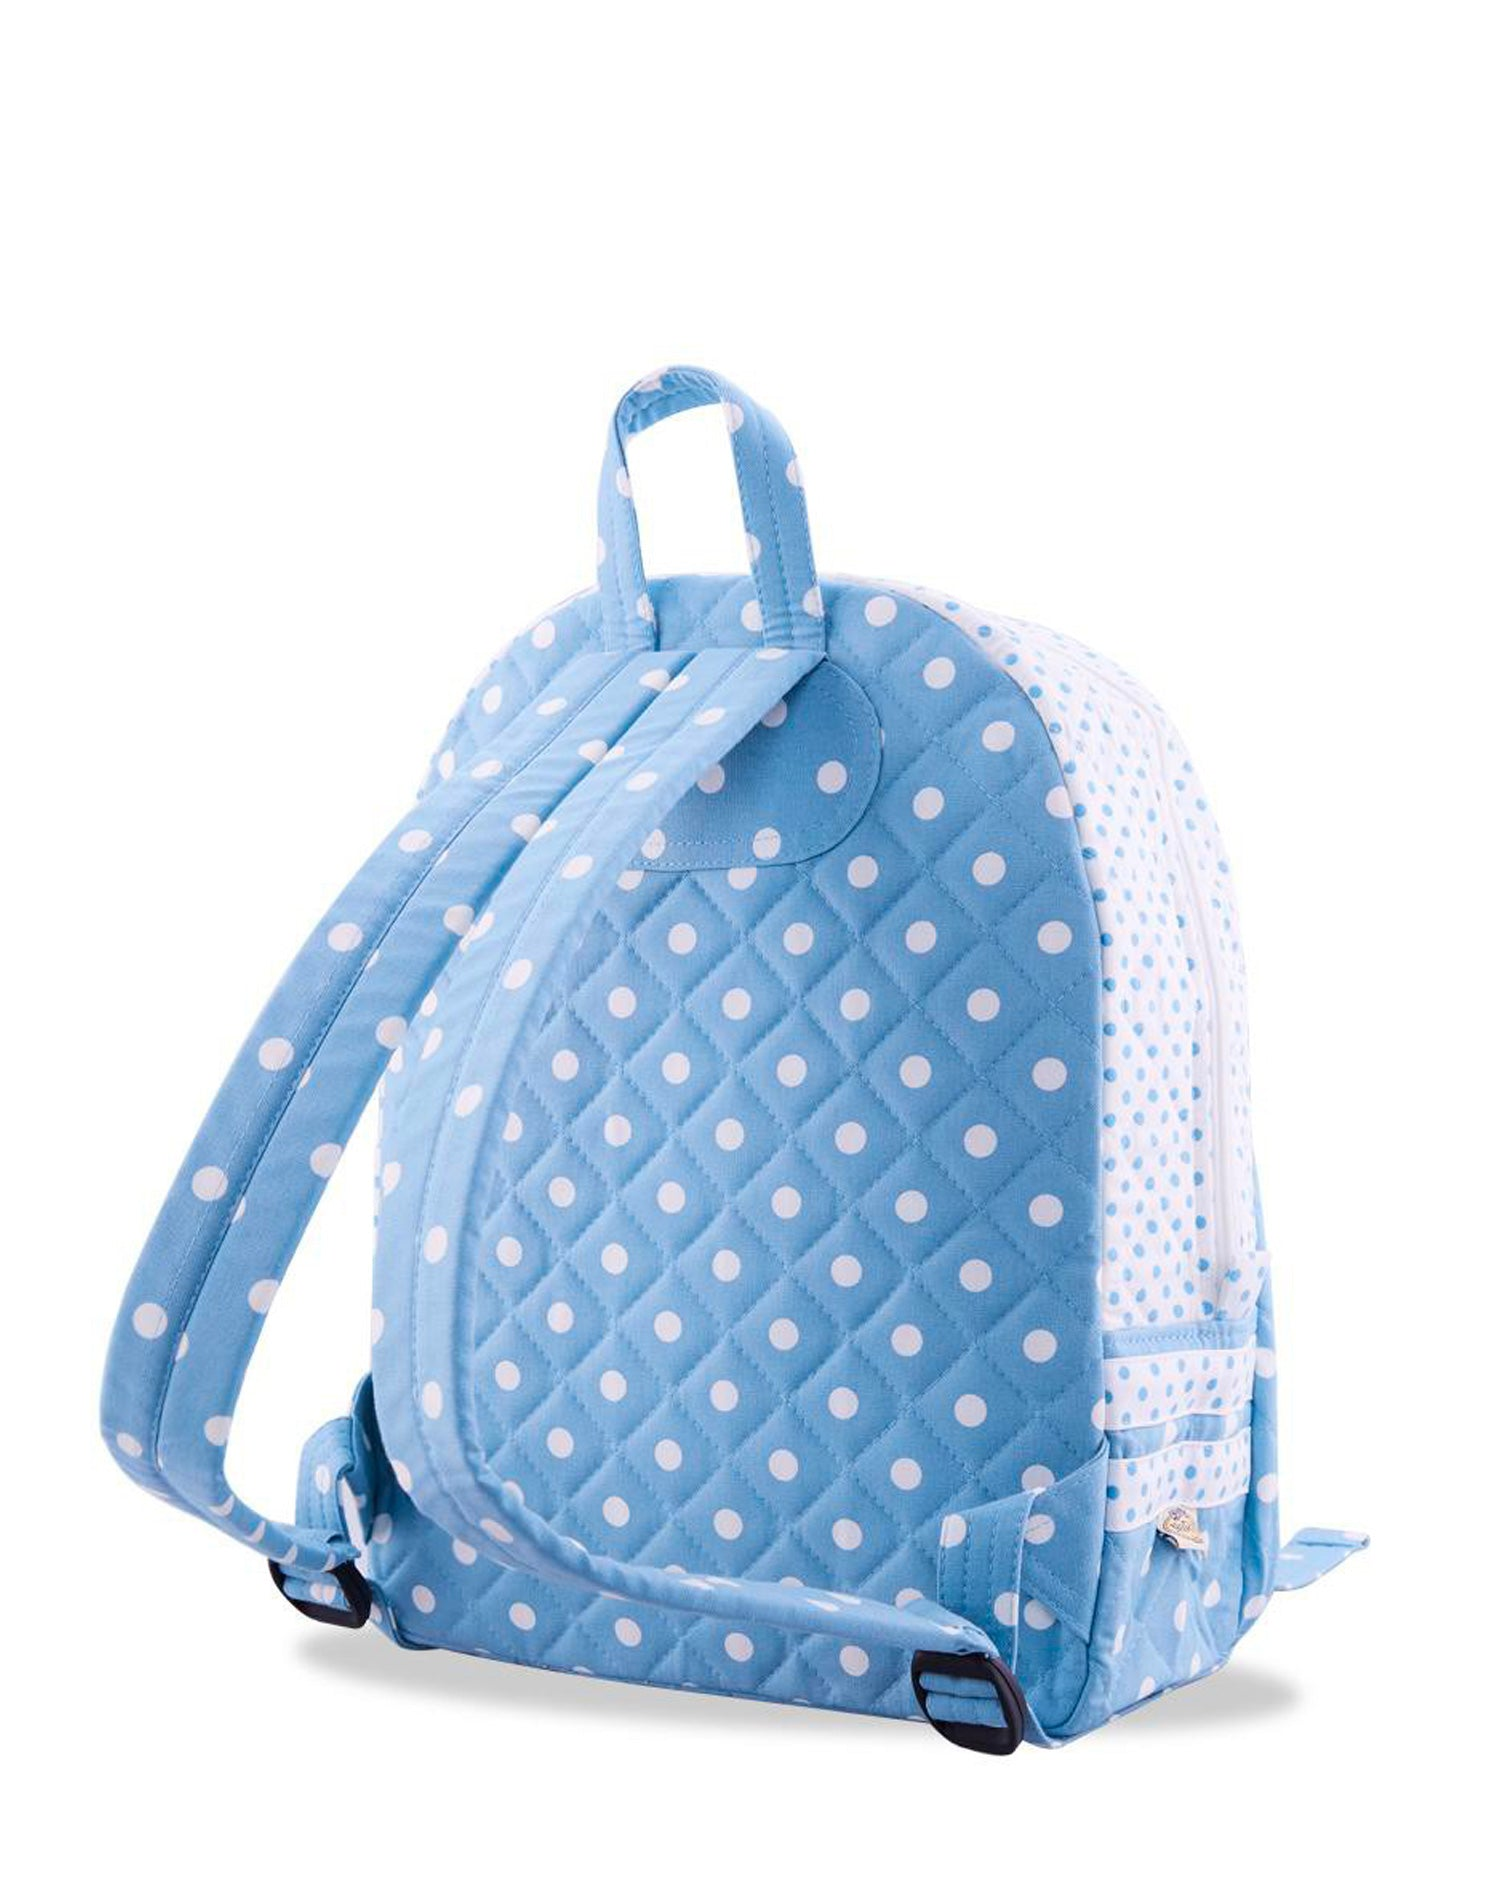 Blue Double Zip Polka Dot Backpack.藍色雙拉鍊波點背囊